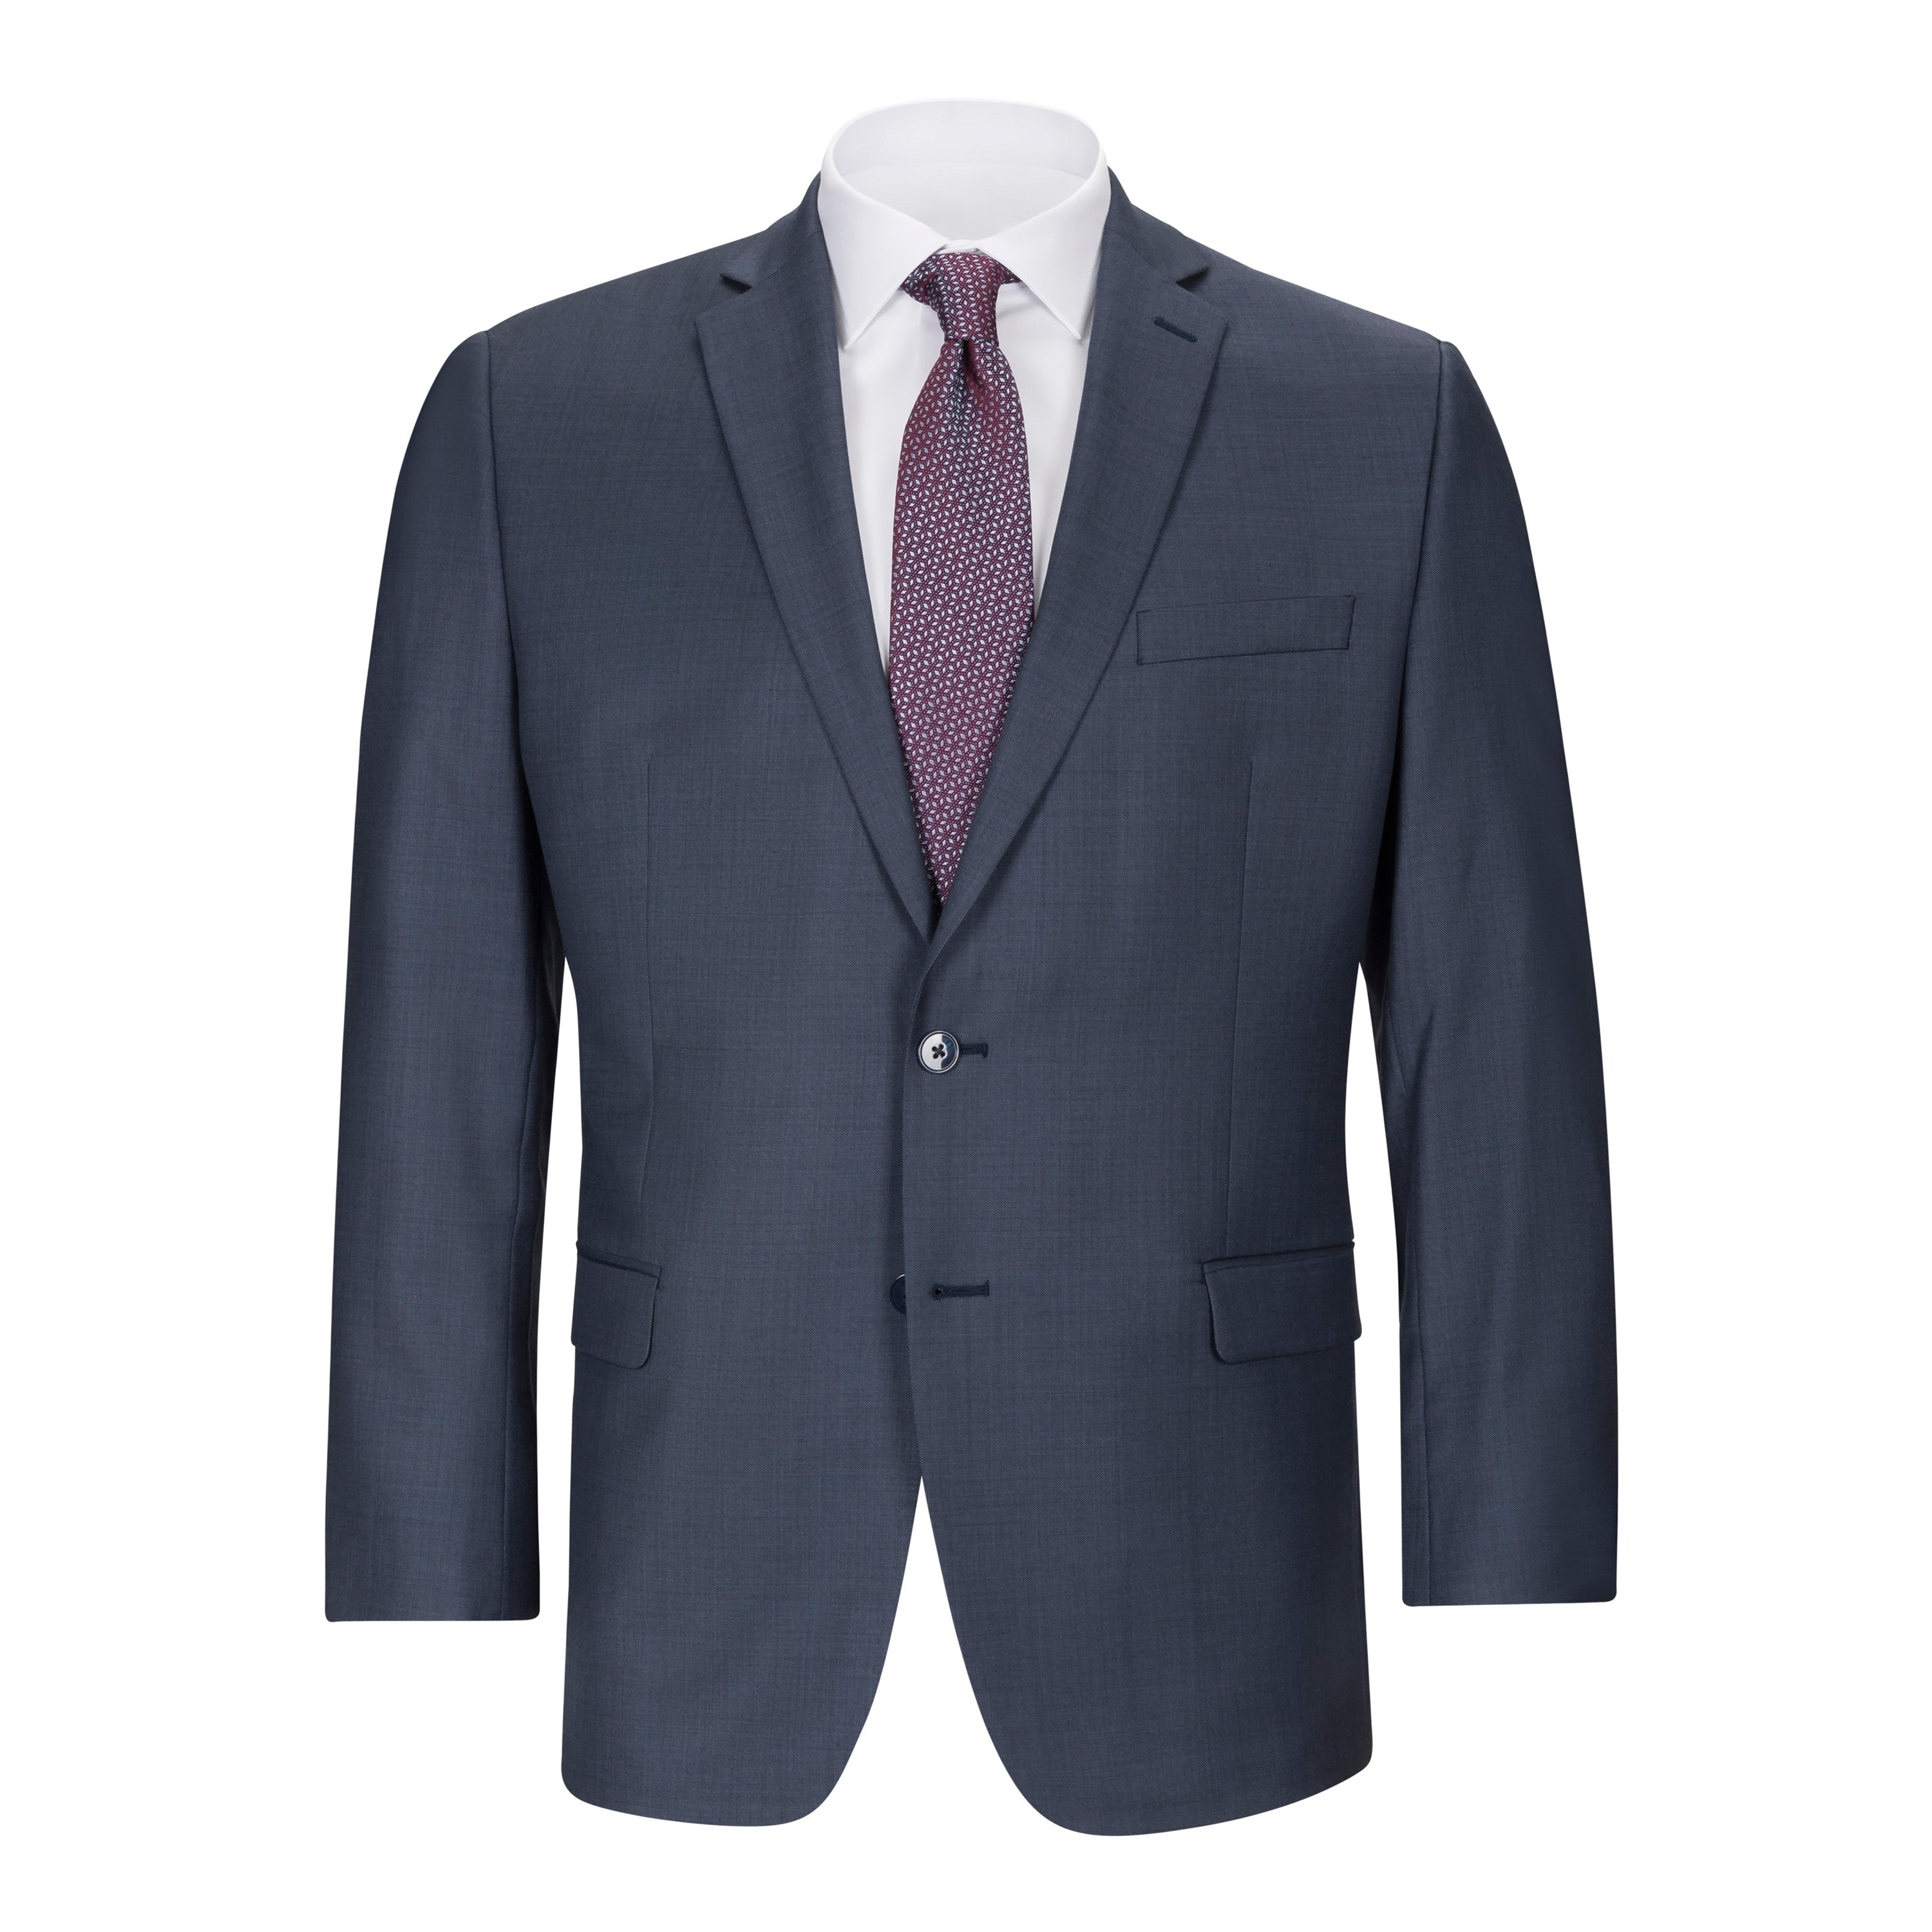 52e8272484dc6 CALVIN KLEIN BLUE SUIT SEPARATES JACKET. Hover to zoom